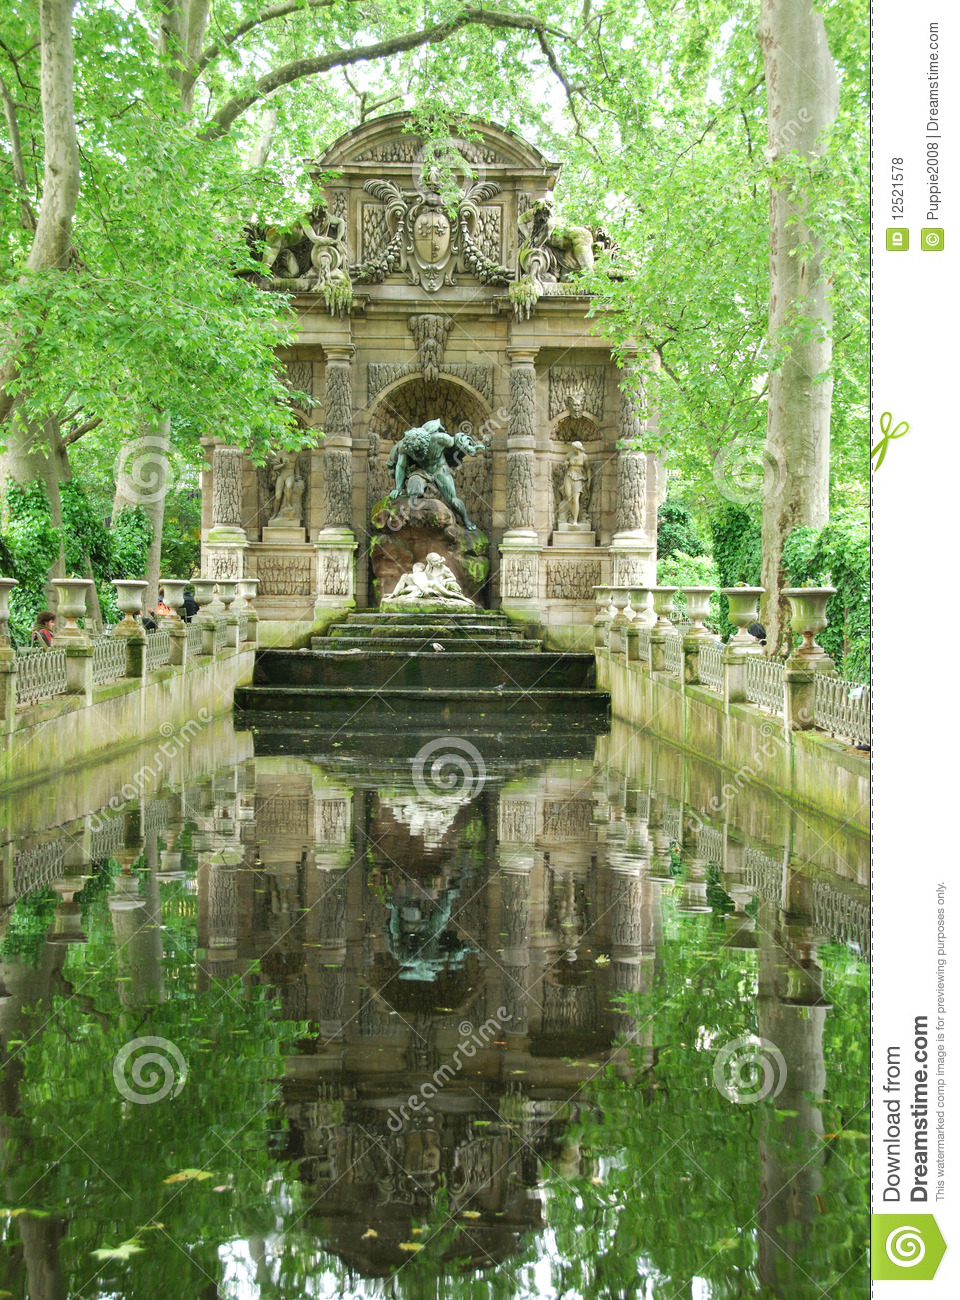 medici brunnen luxemburg arbeiten im garten stockfoto bild von medici kunst 12521578. Black Bedroom Furniture Sets. Home Design Ideas